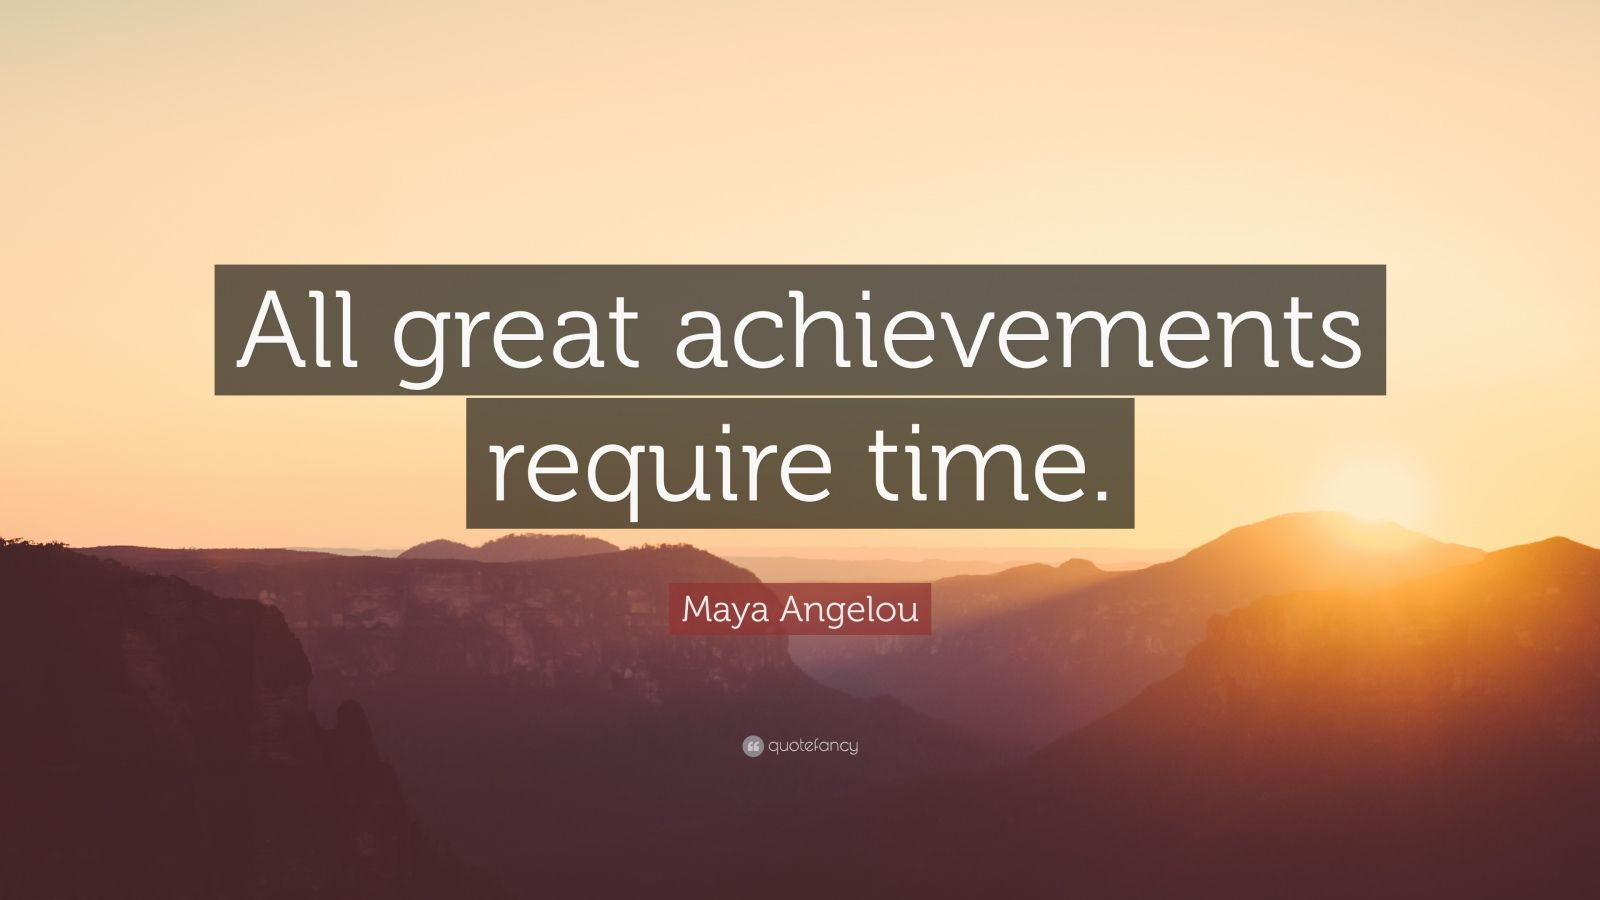 maya angelou quote   u201call great achievements require time